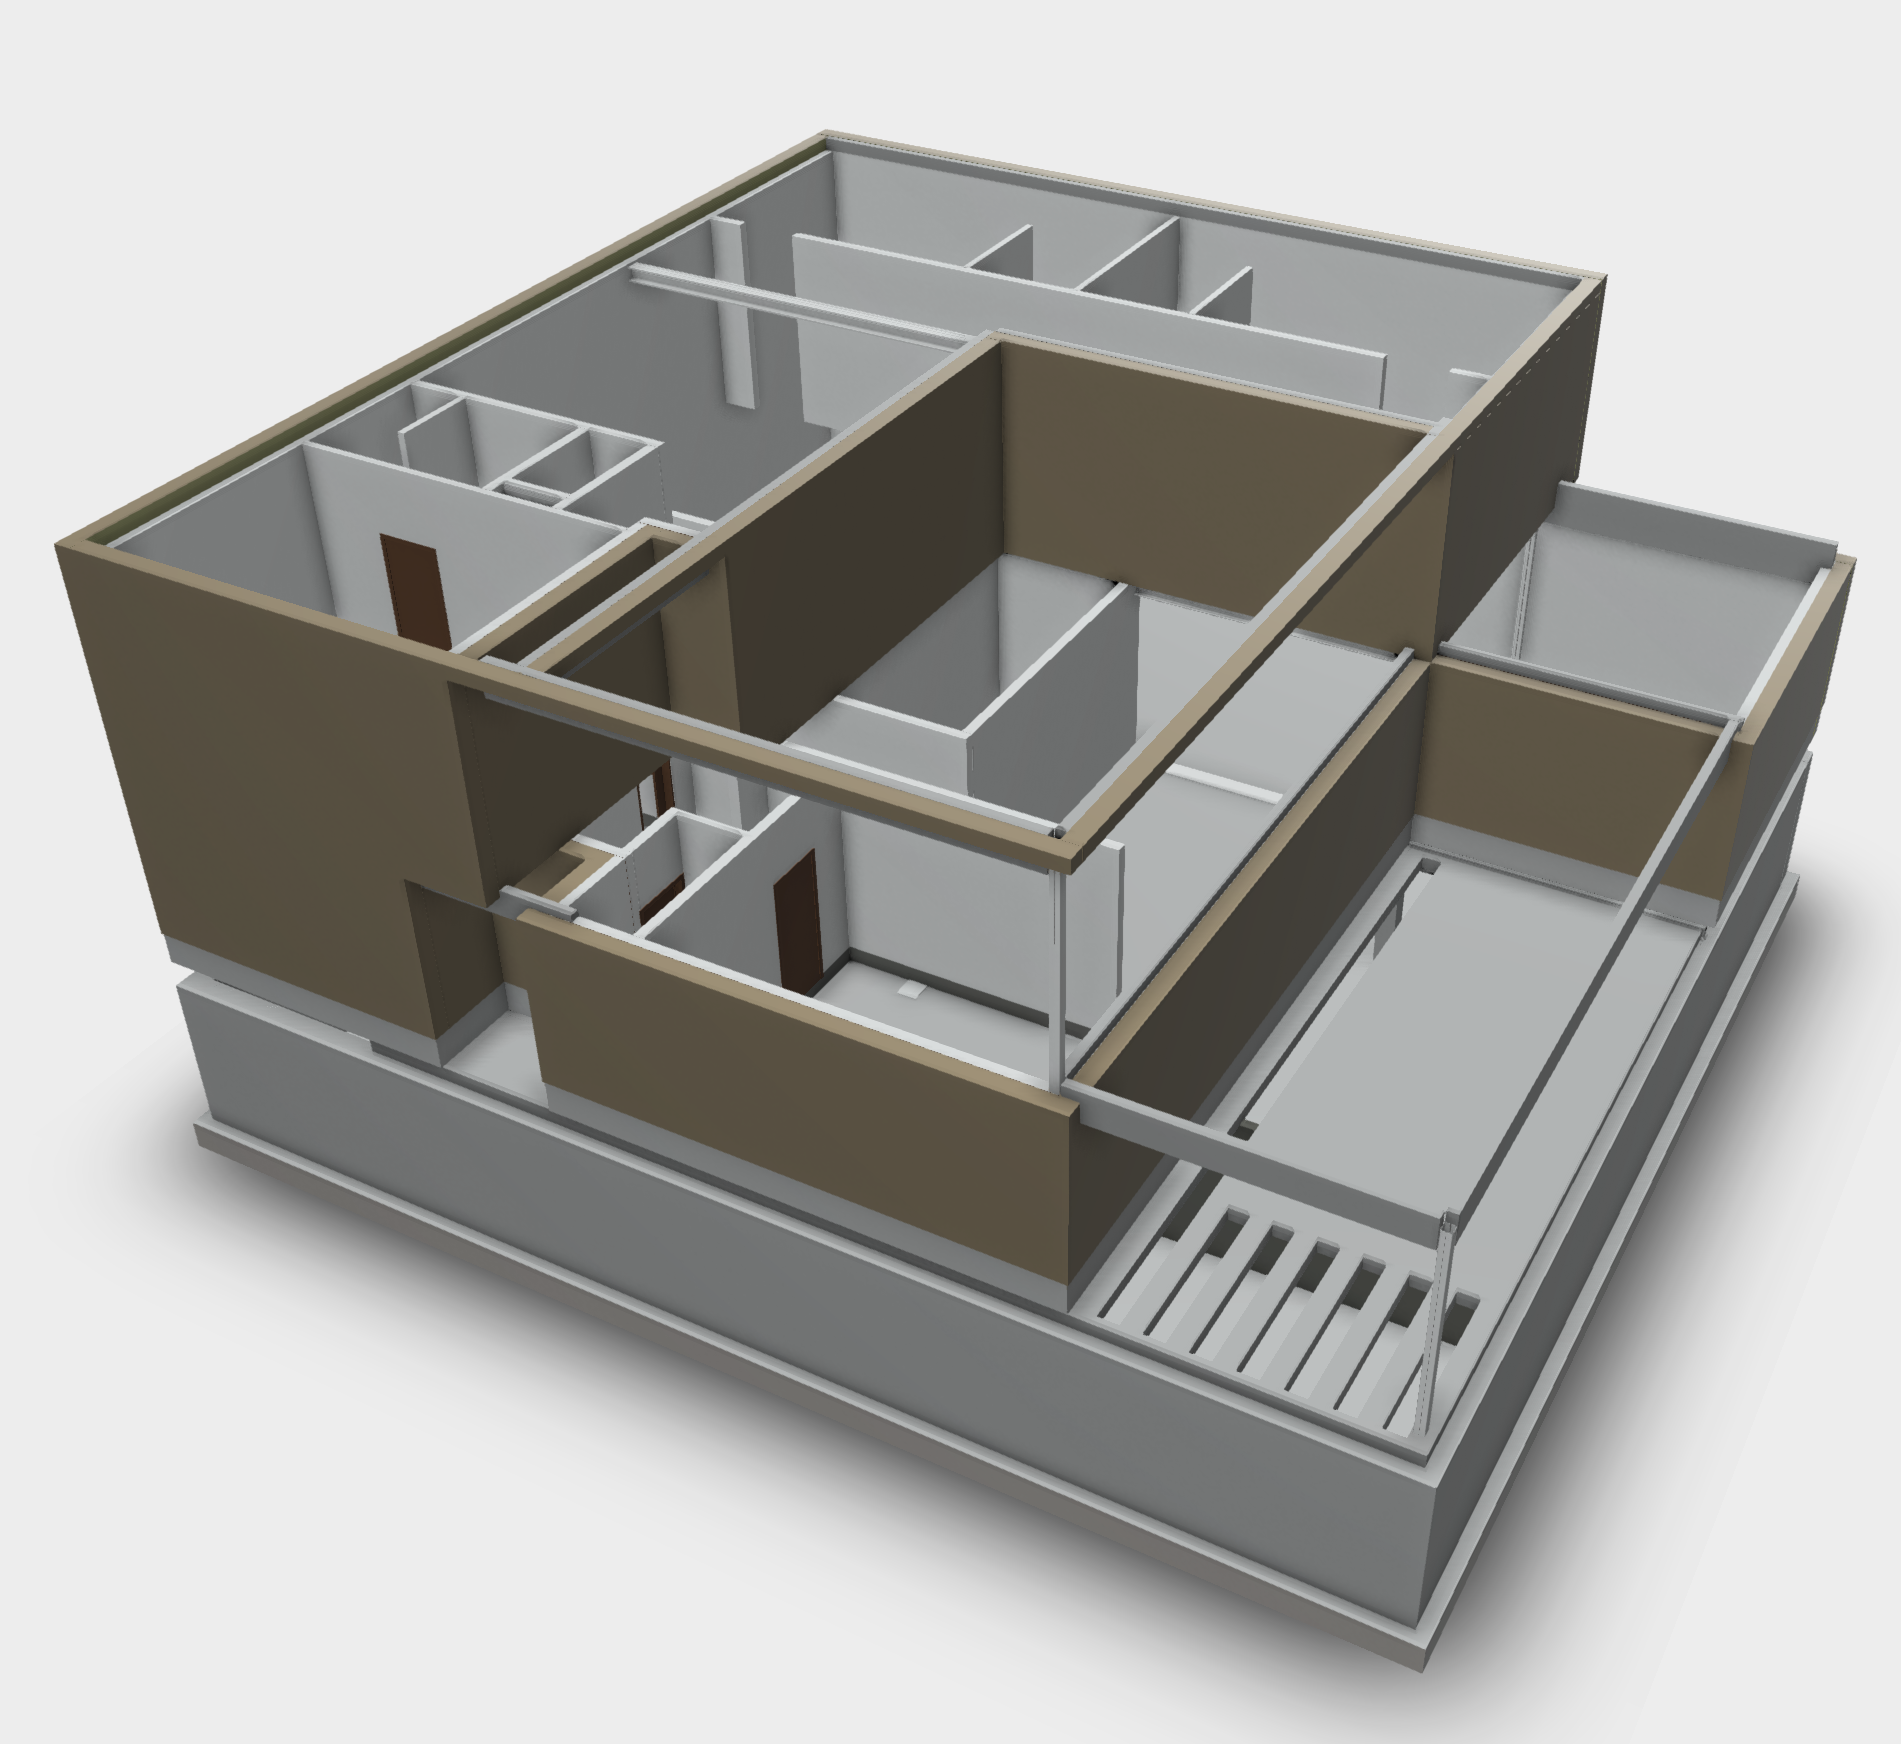 Revit model in opbouw